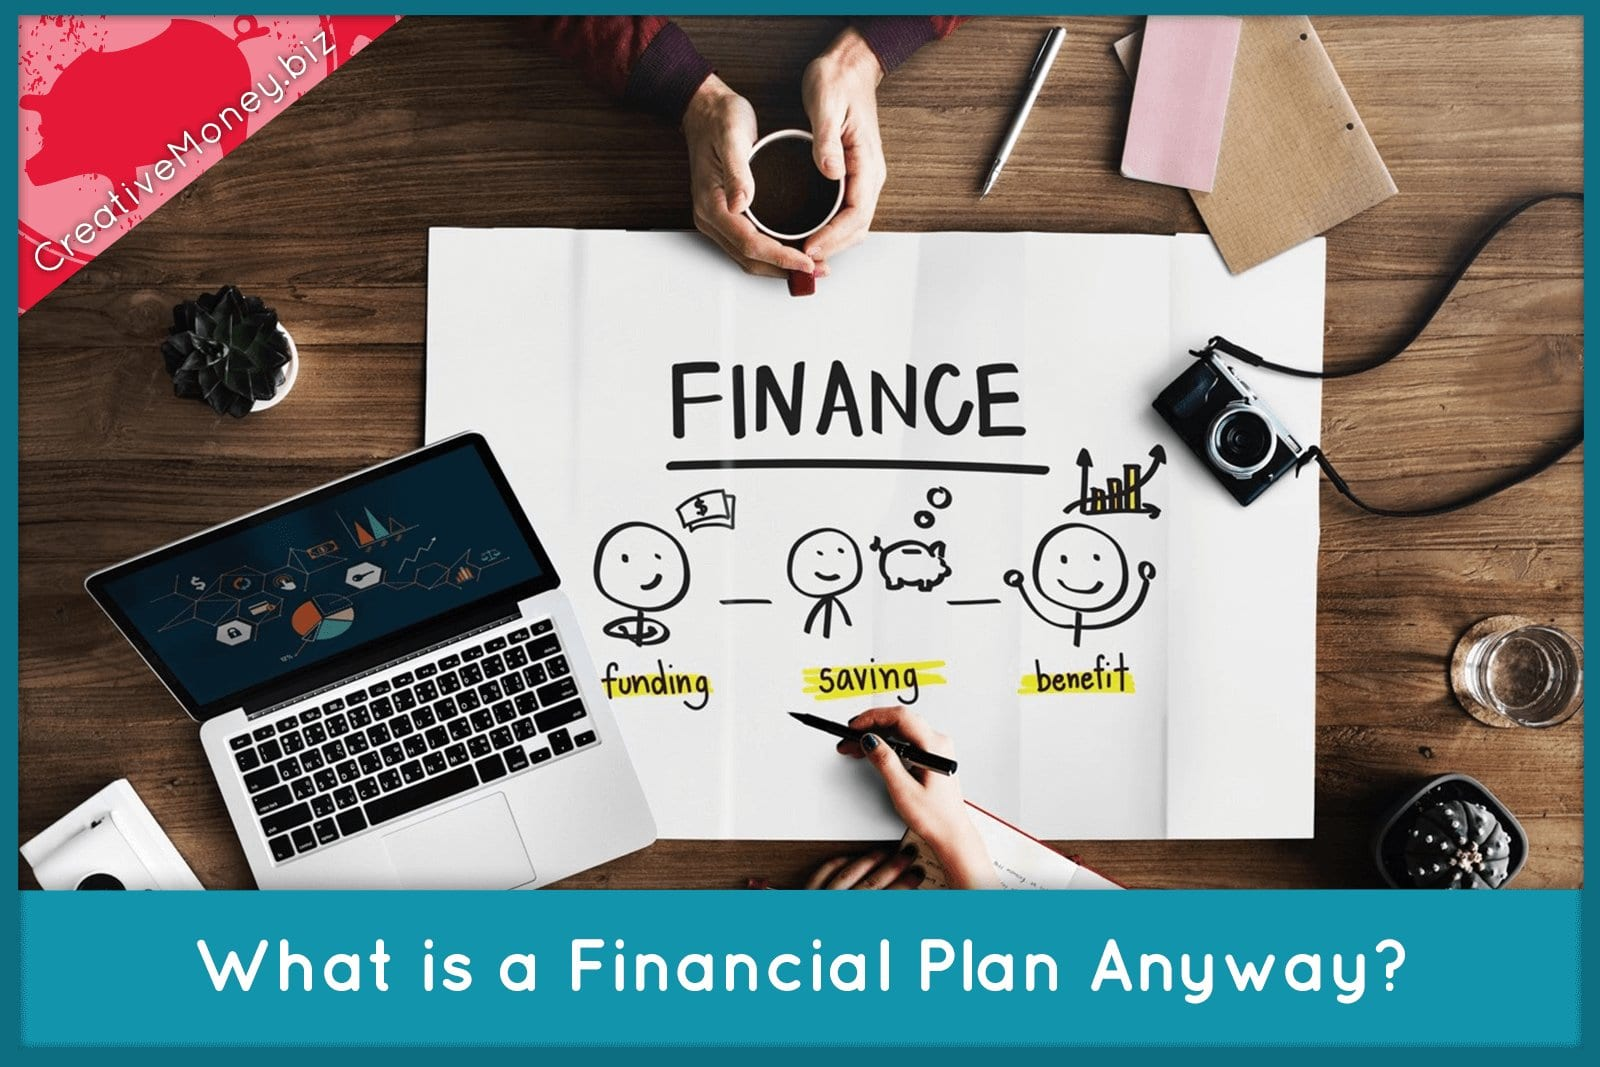 What is a Financial Plan Anyway?